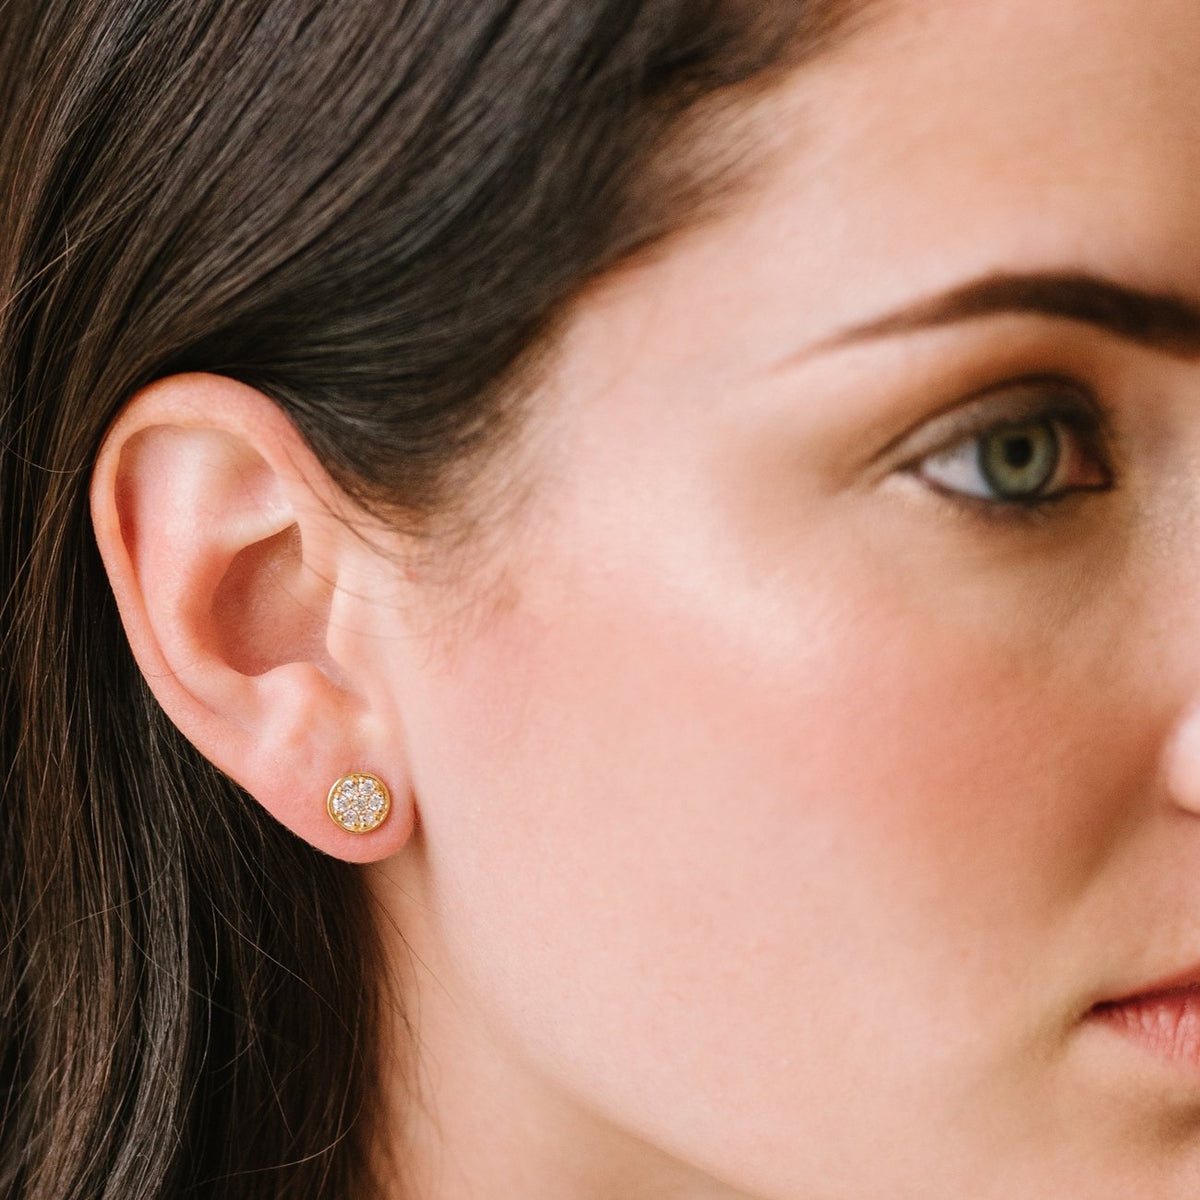 MINI LOVE CIRCLE STUDS - CUBIC ZIRCONIA & GOLD - SO PRETTY CARA COTTER